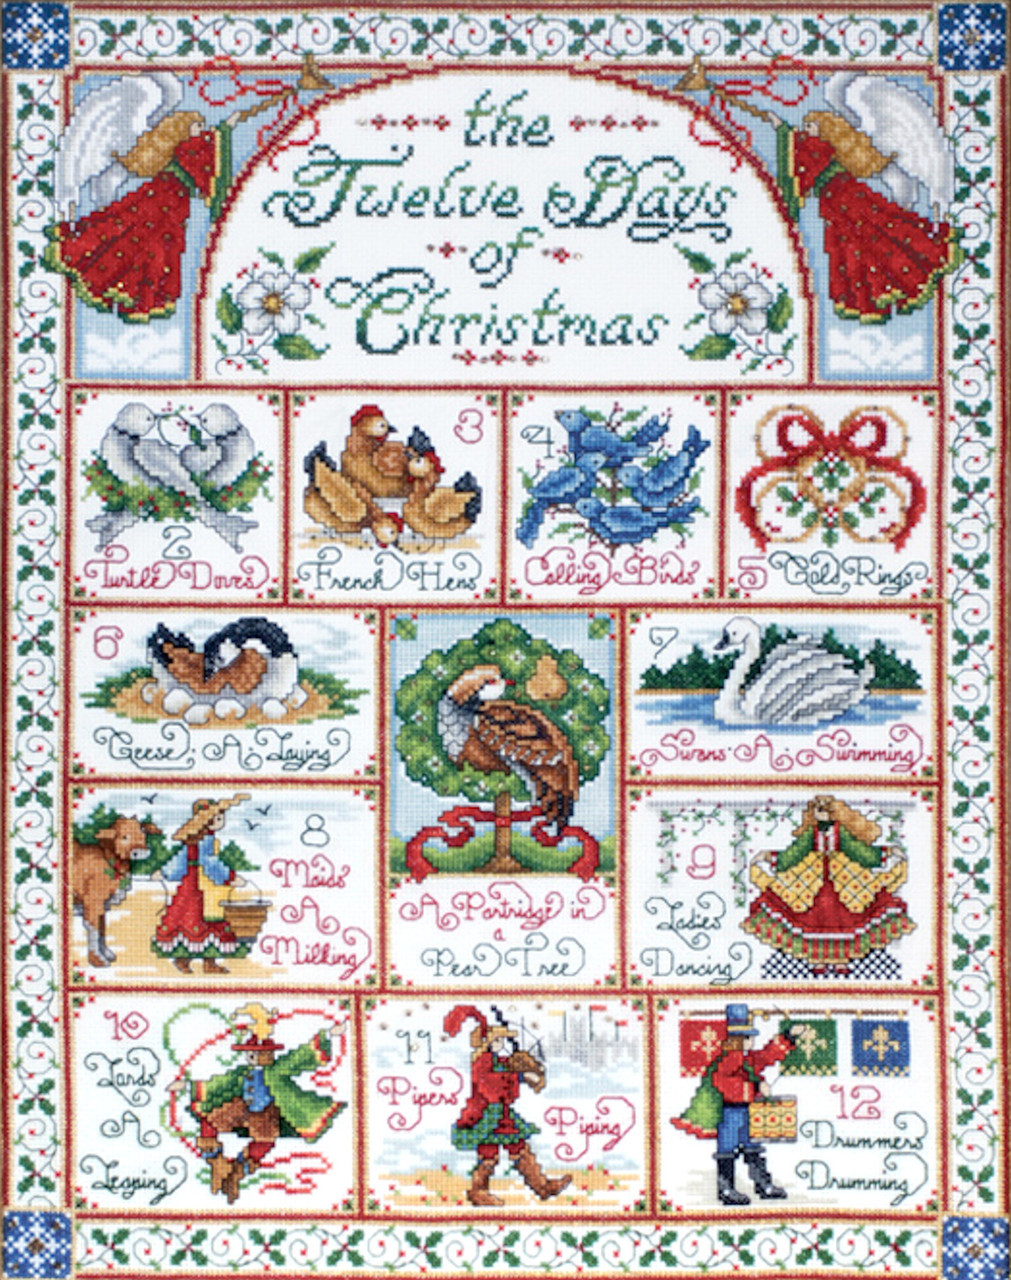 12 Days Of Christmas Cross Stitch.Design Works The Twelve Days Of Christmas